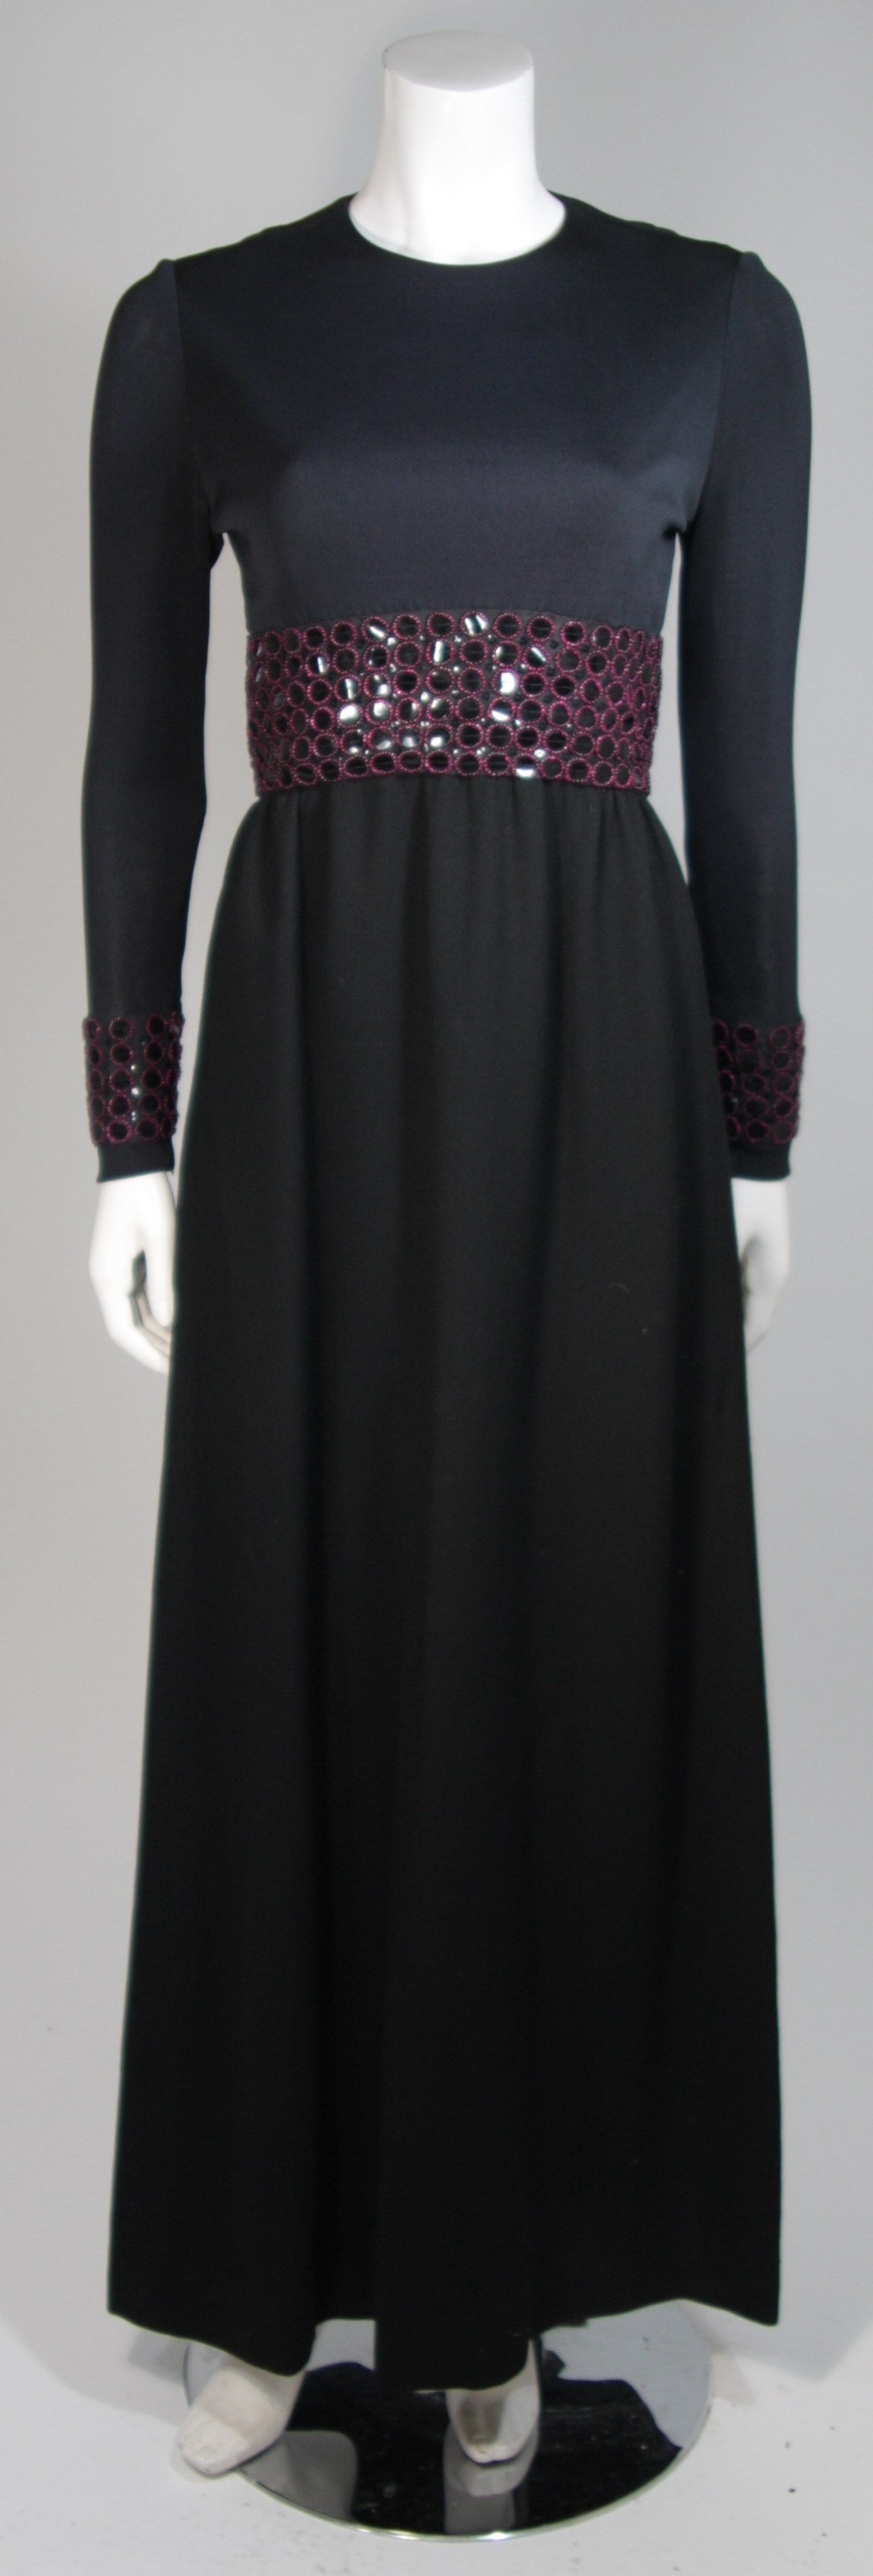 Chester Weinberg Black Long Sleeve Gown With Beaded Waist Size S M 2